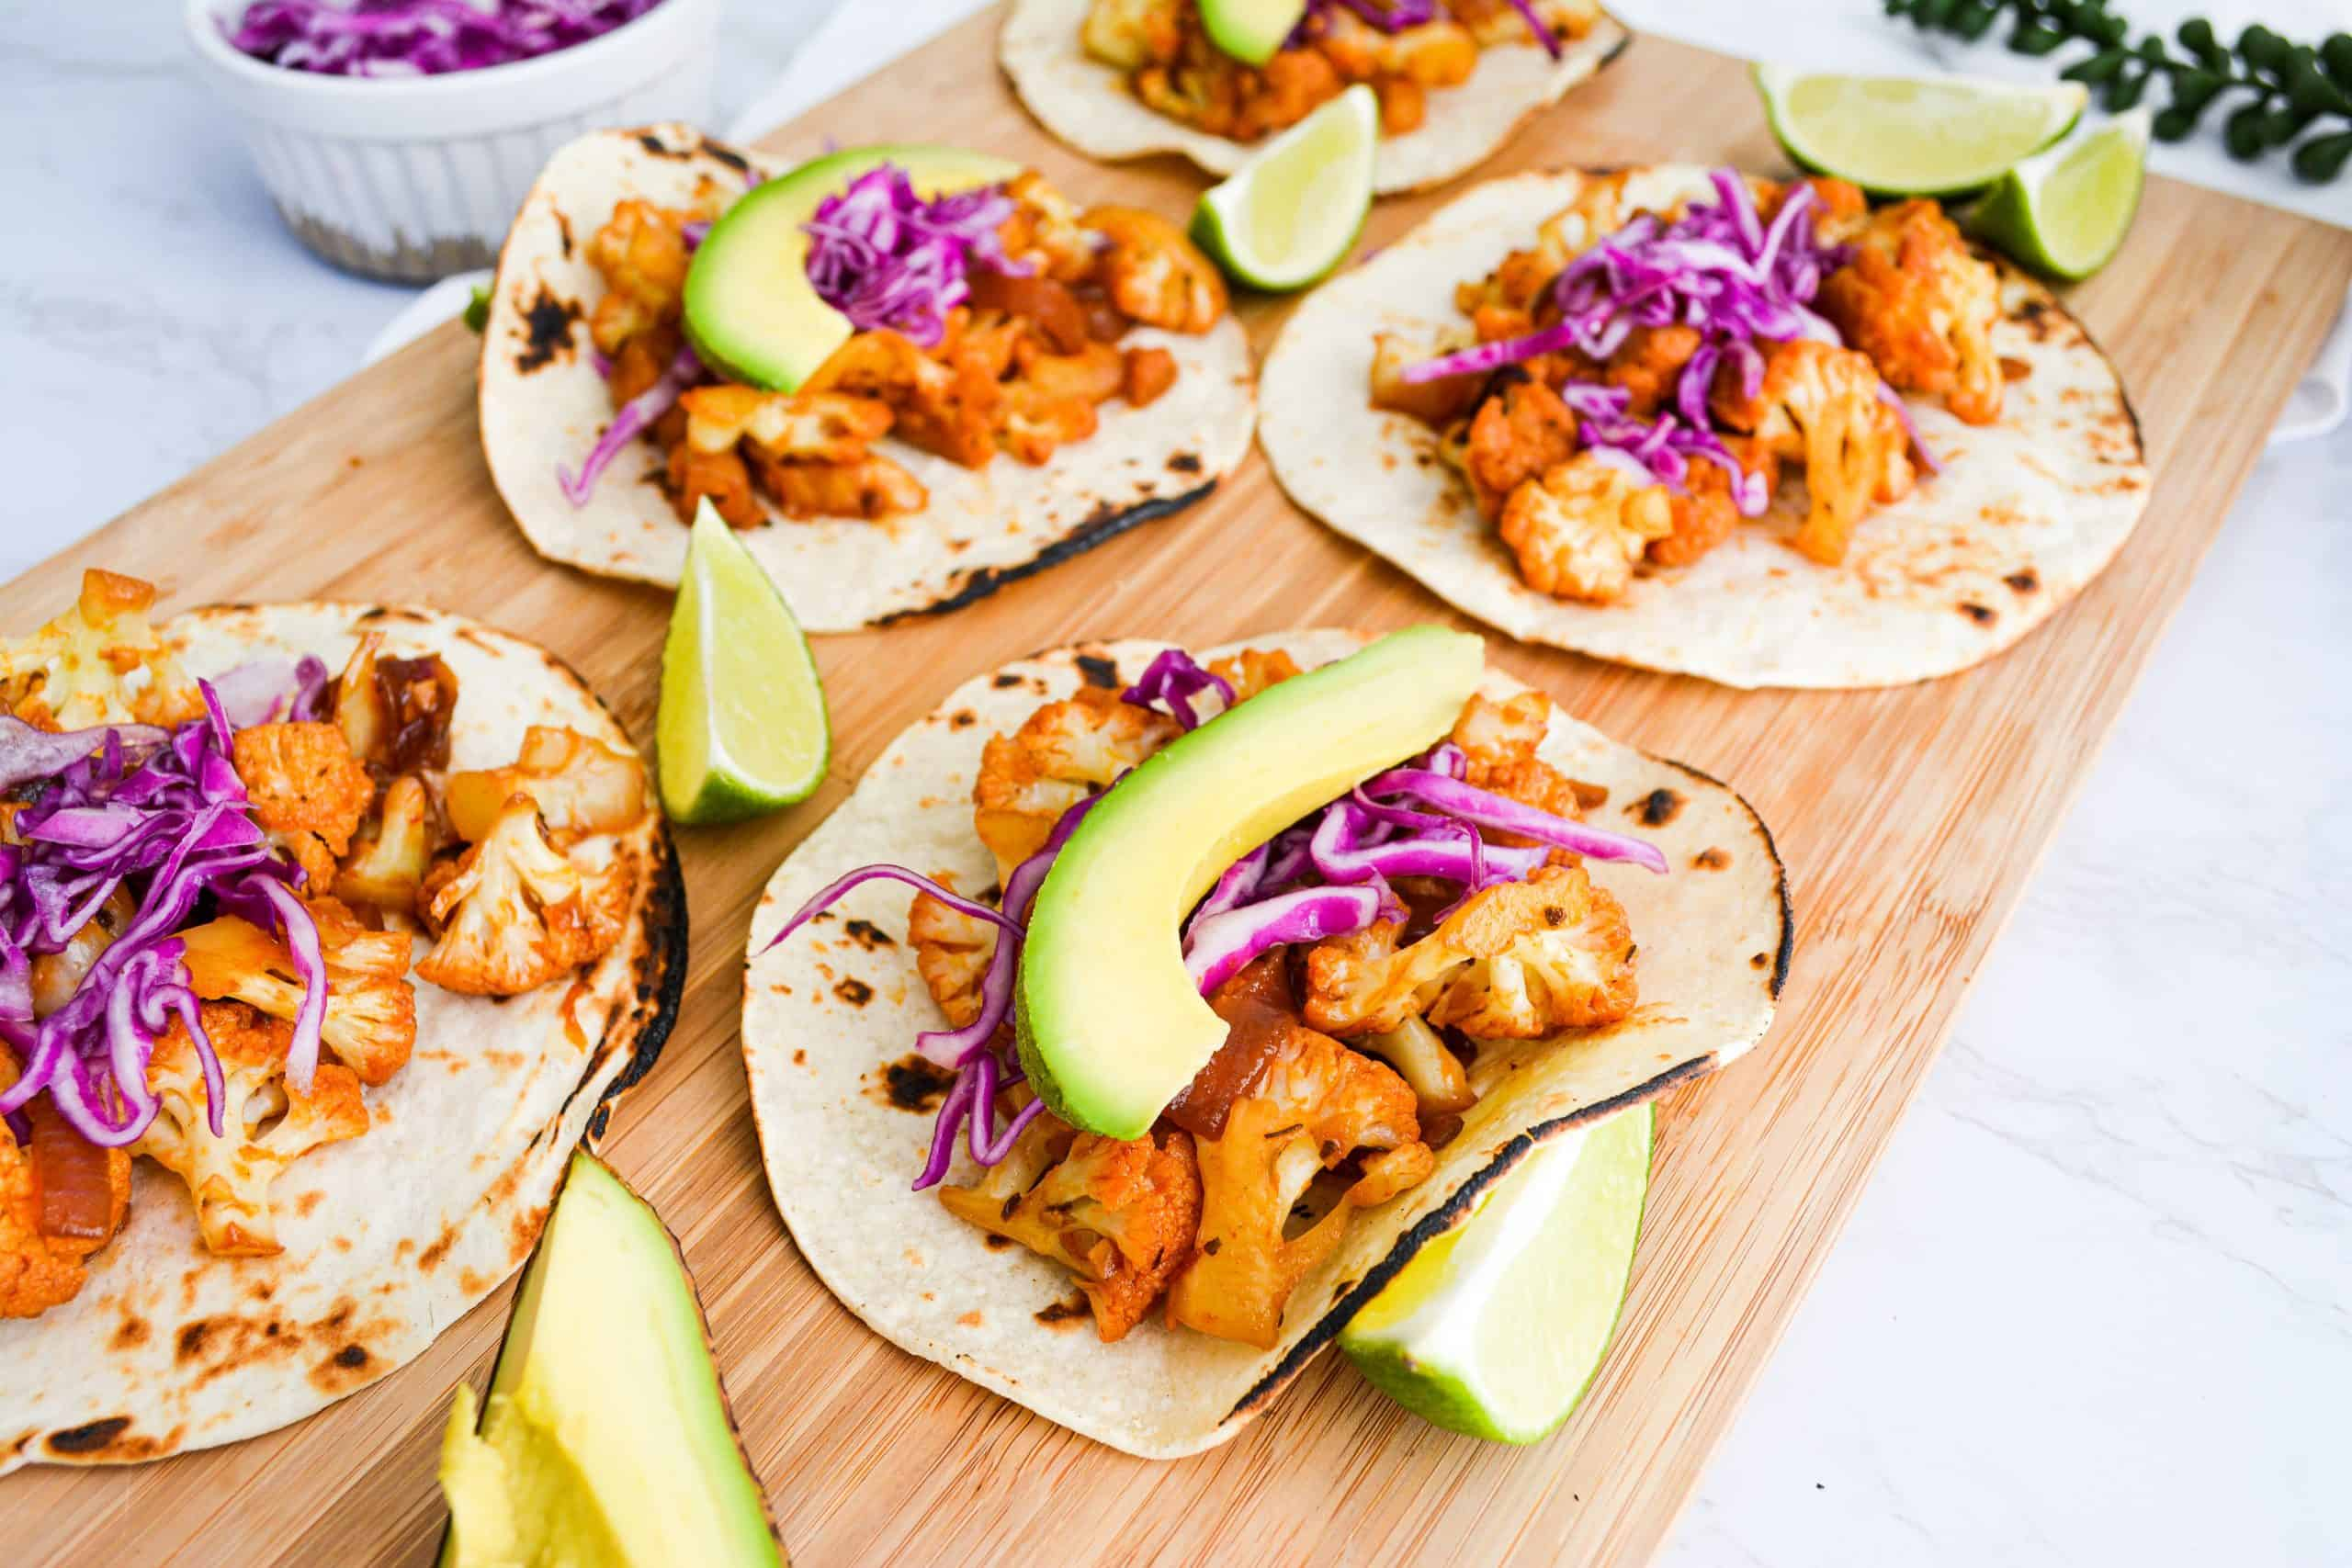 20 Minute Sweet and Spicy Agave Chipotle Cauliflower Tacos